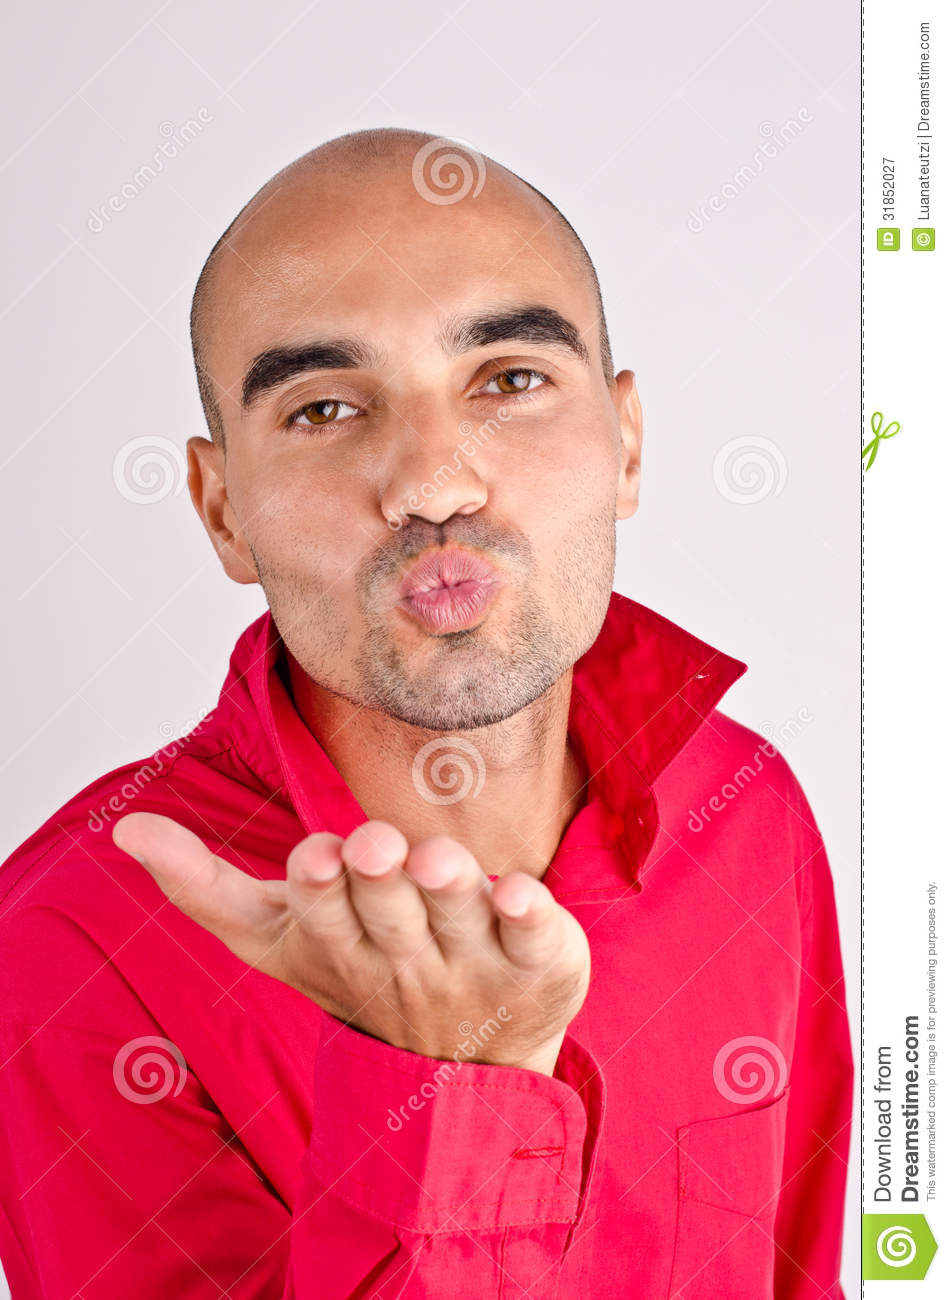 how to romantically kiss a guy